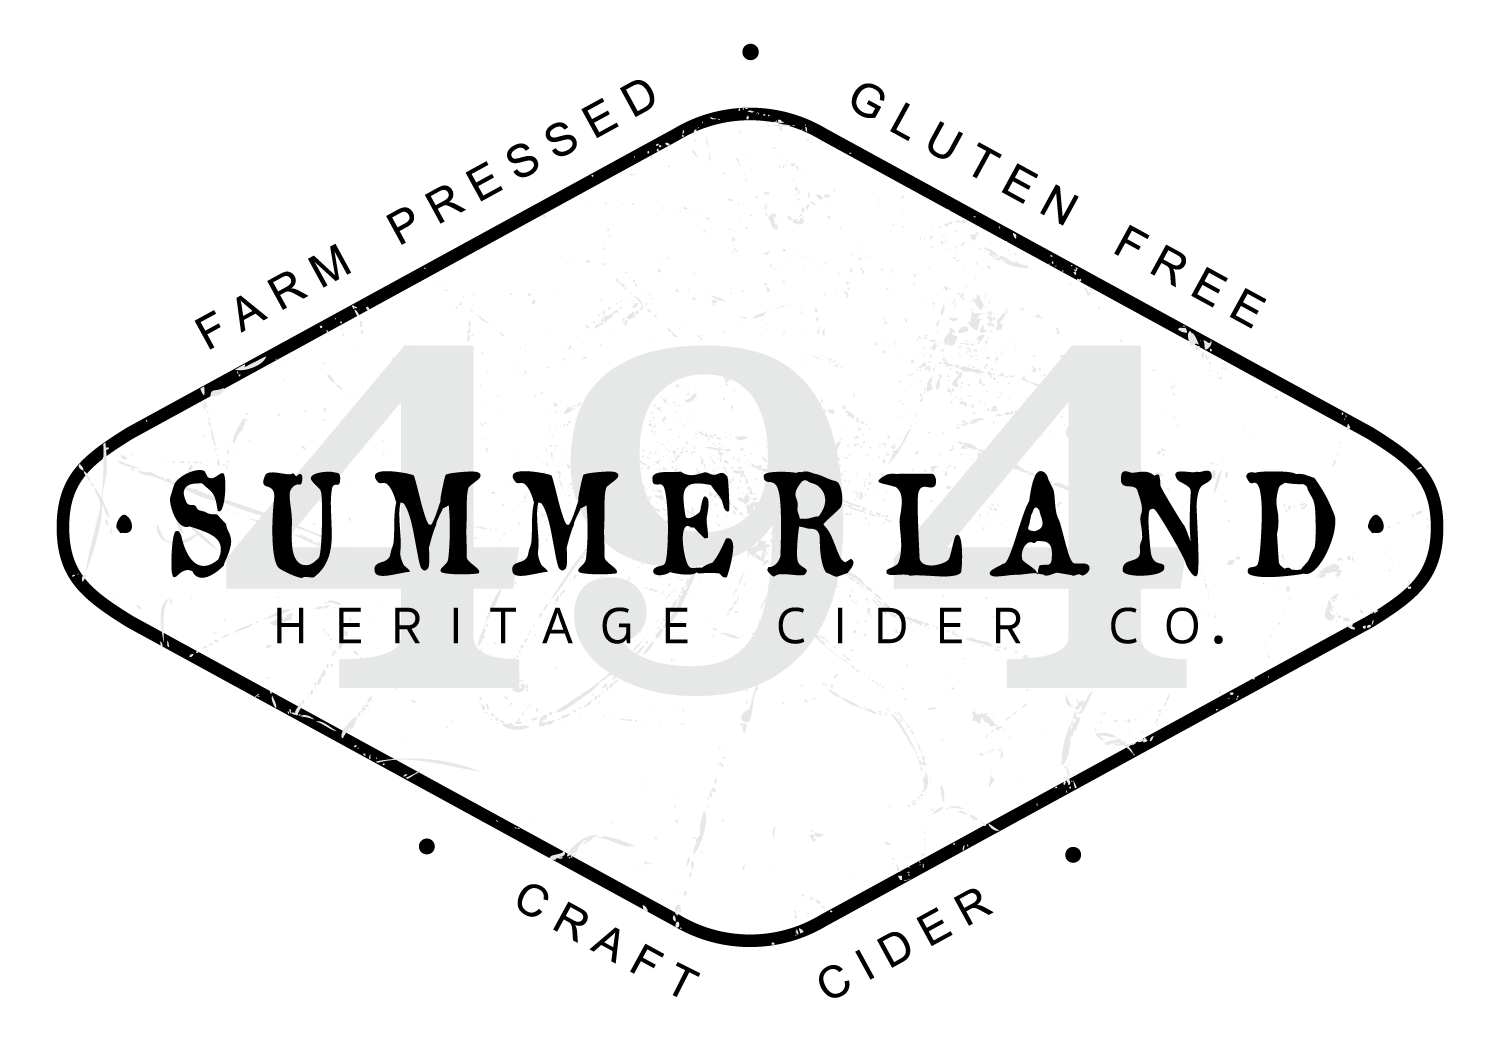 Summerland Heritage Cider Co.